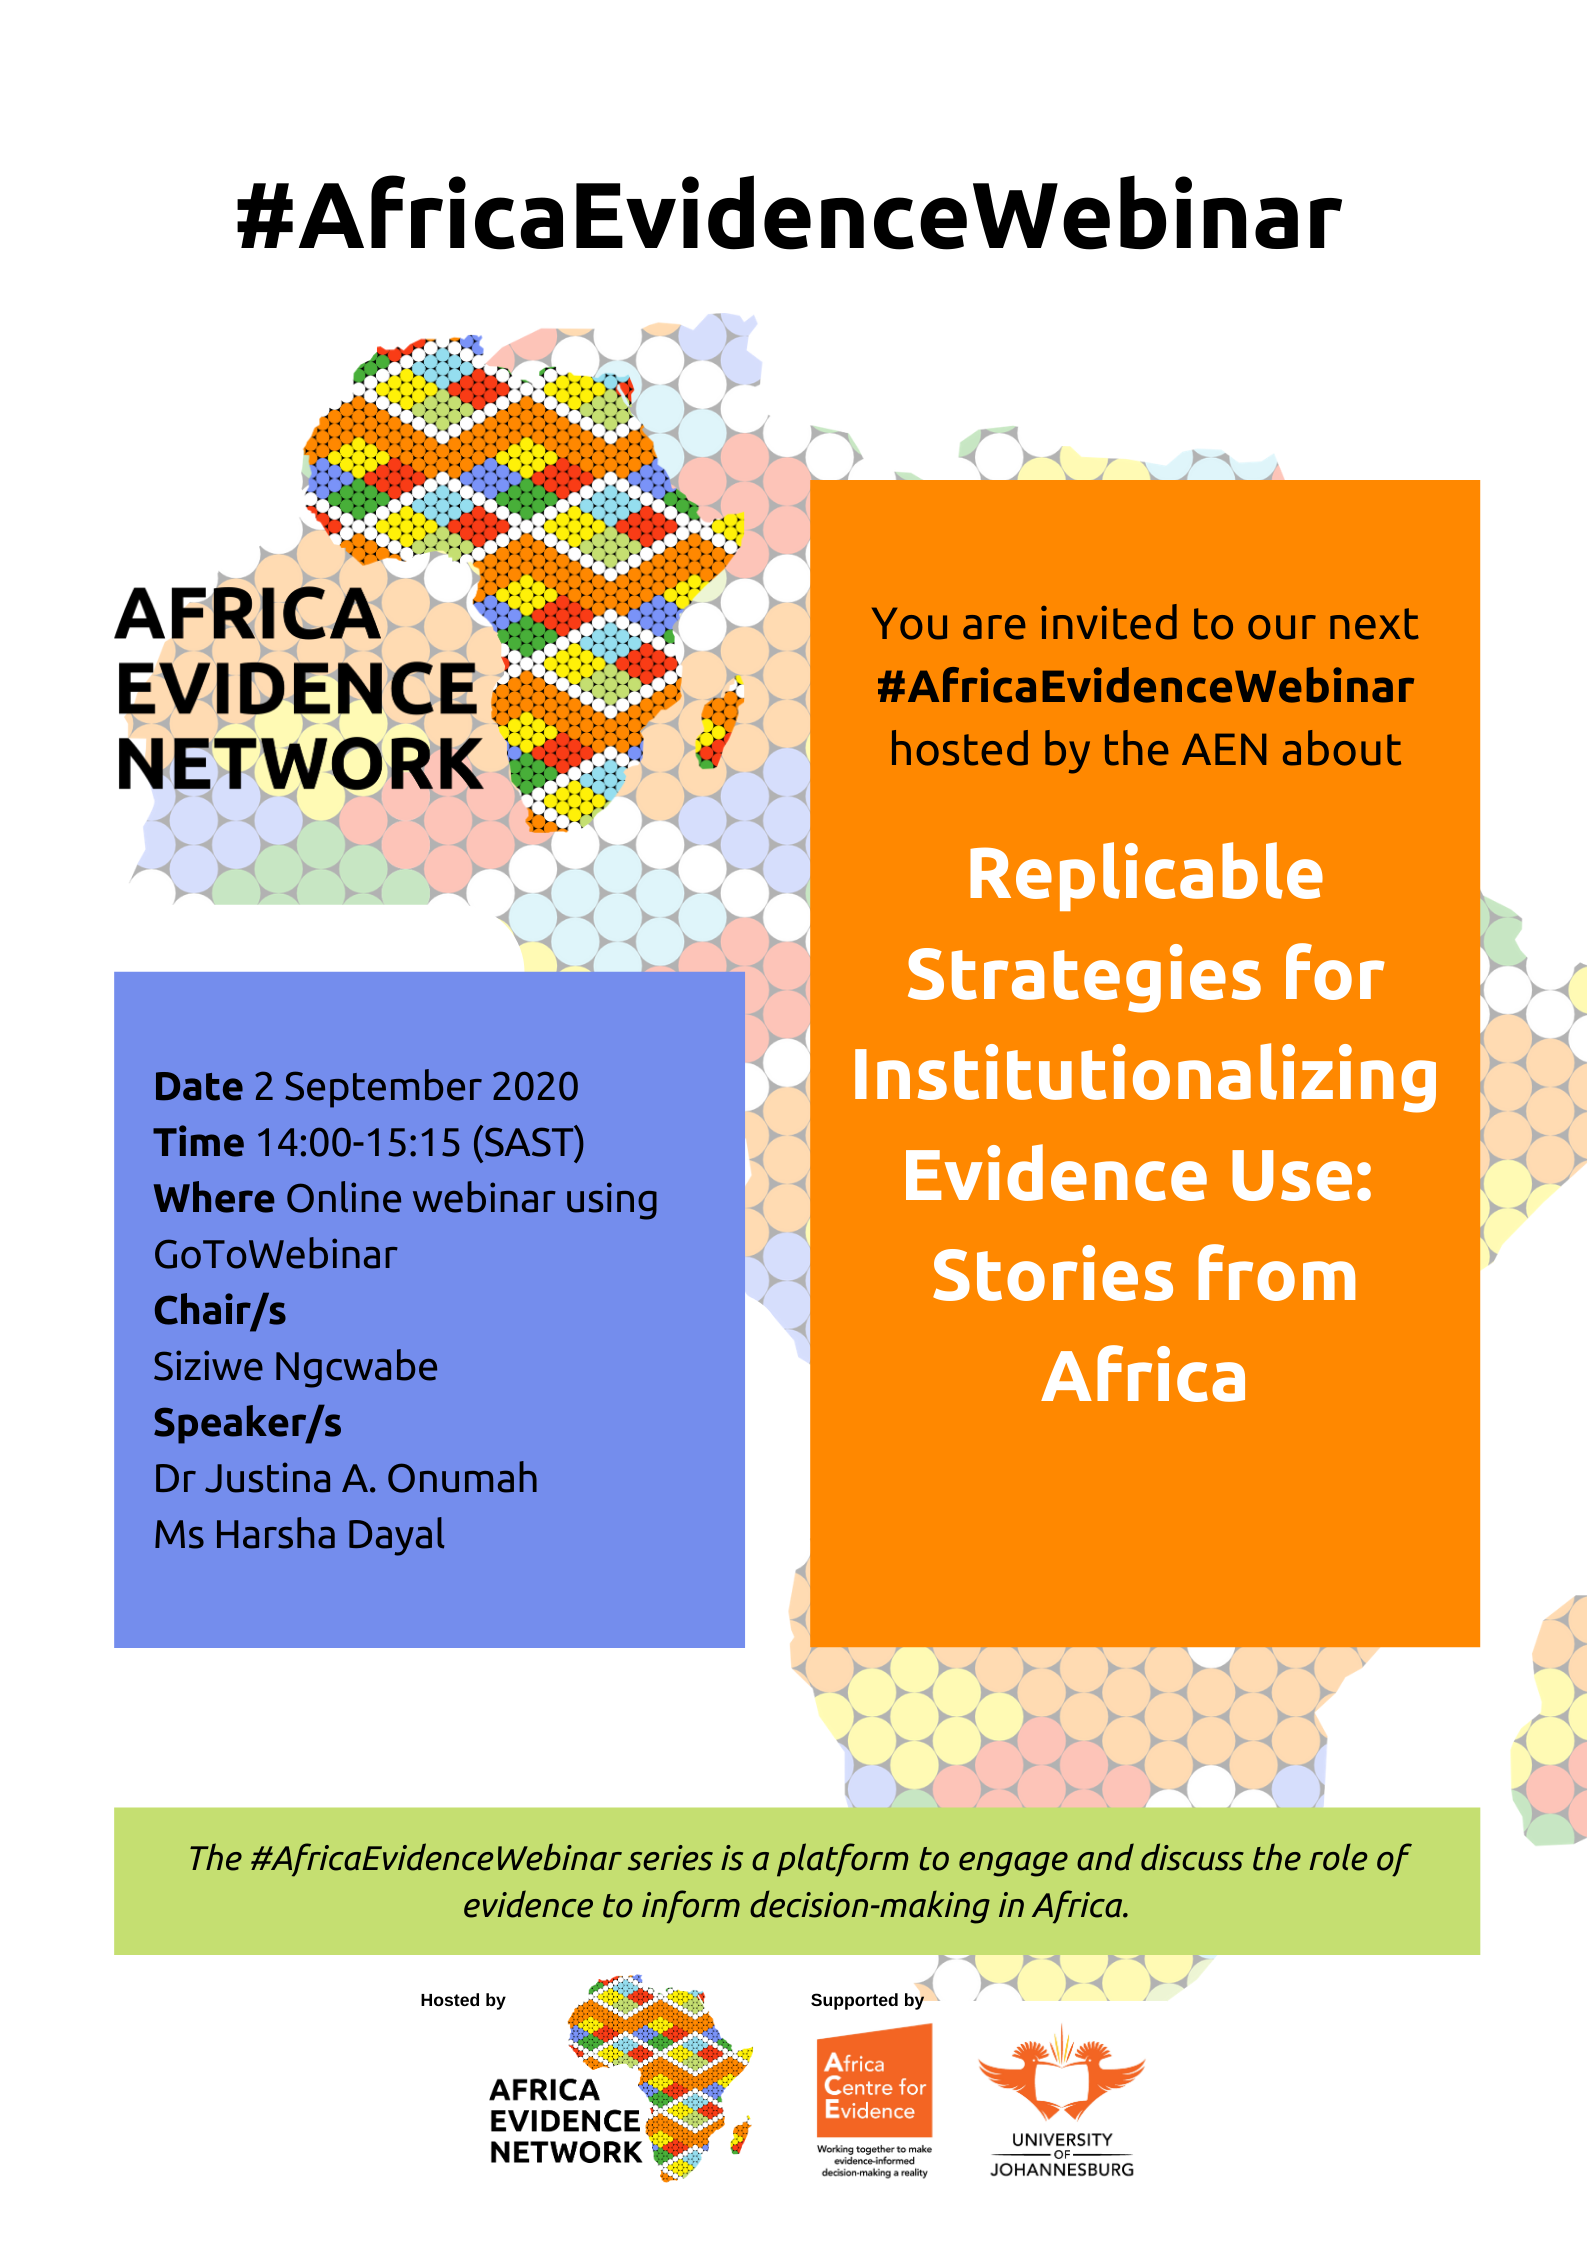 #AfricaEvidenceWebinar | Replicable Strategies for Institutionalizing Evidence Use: Stories from Africa